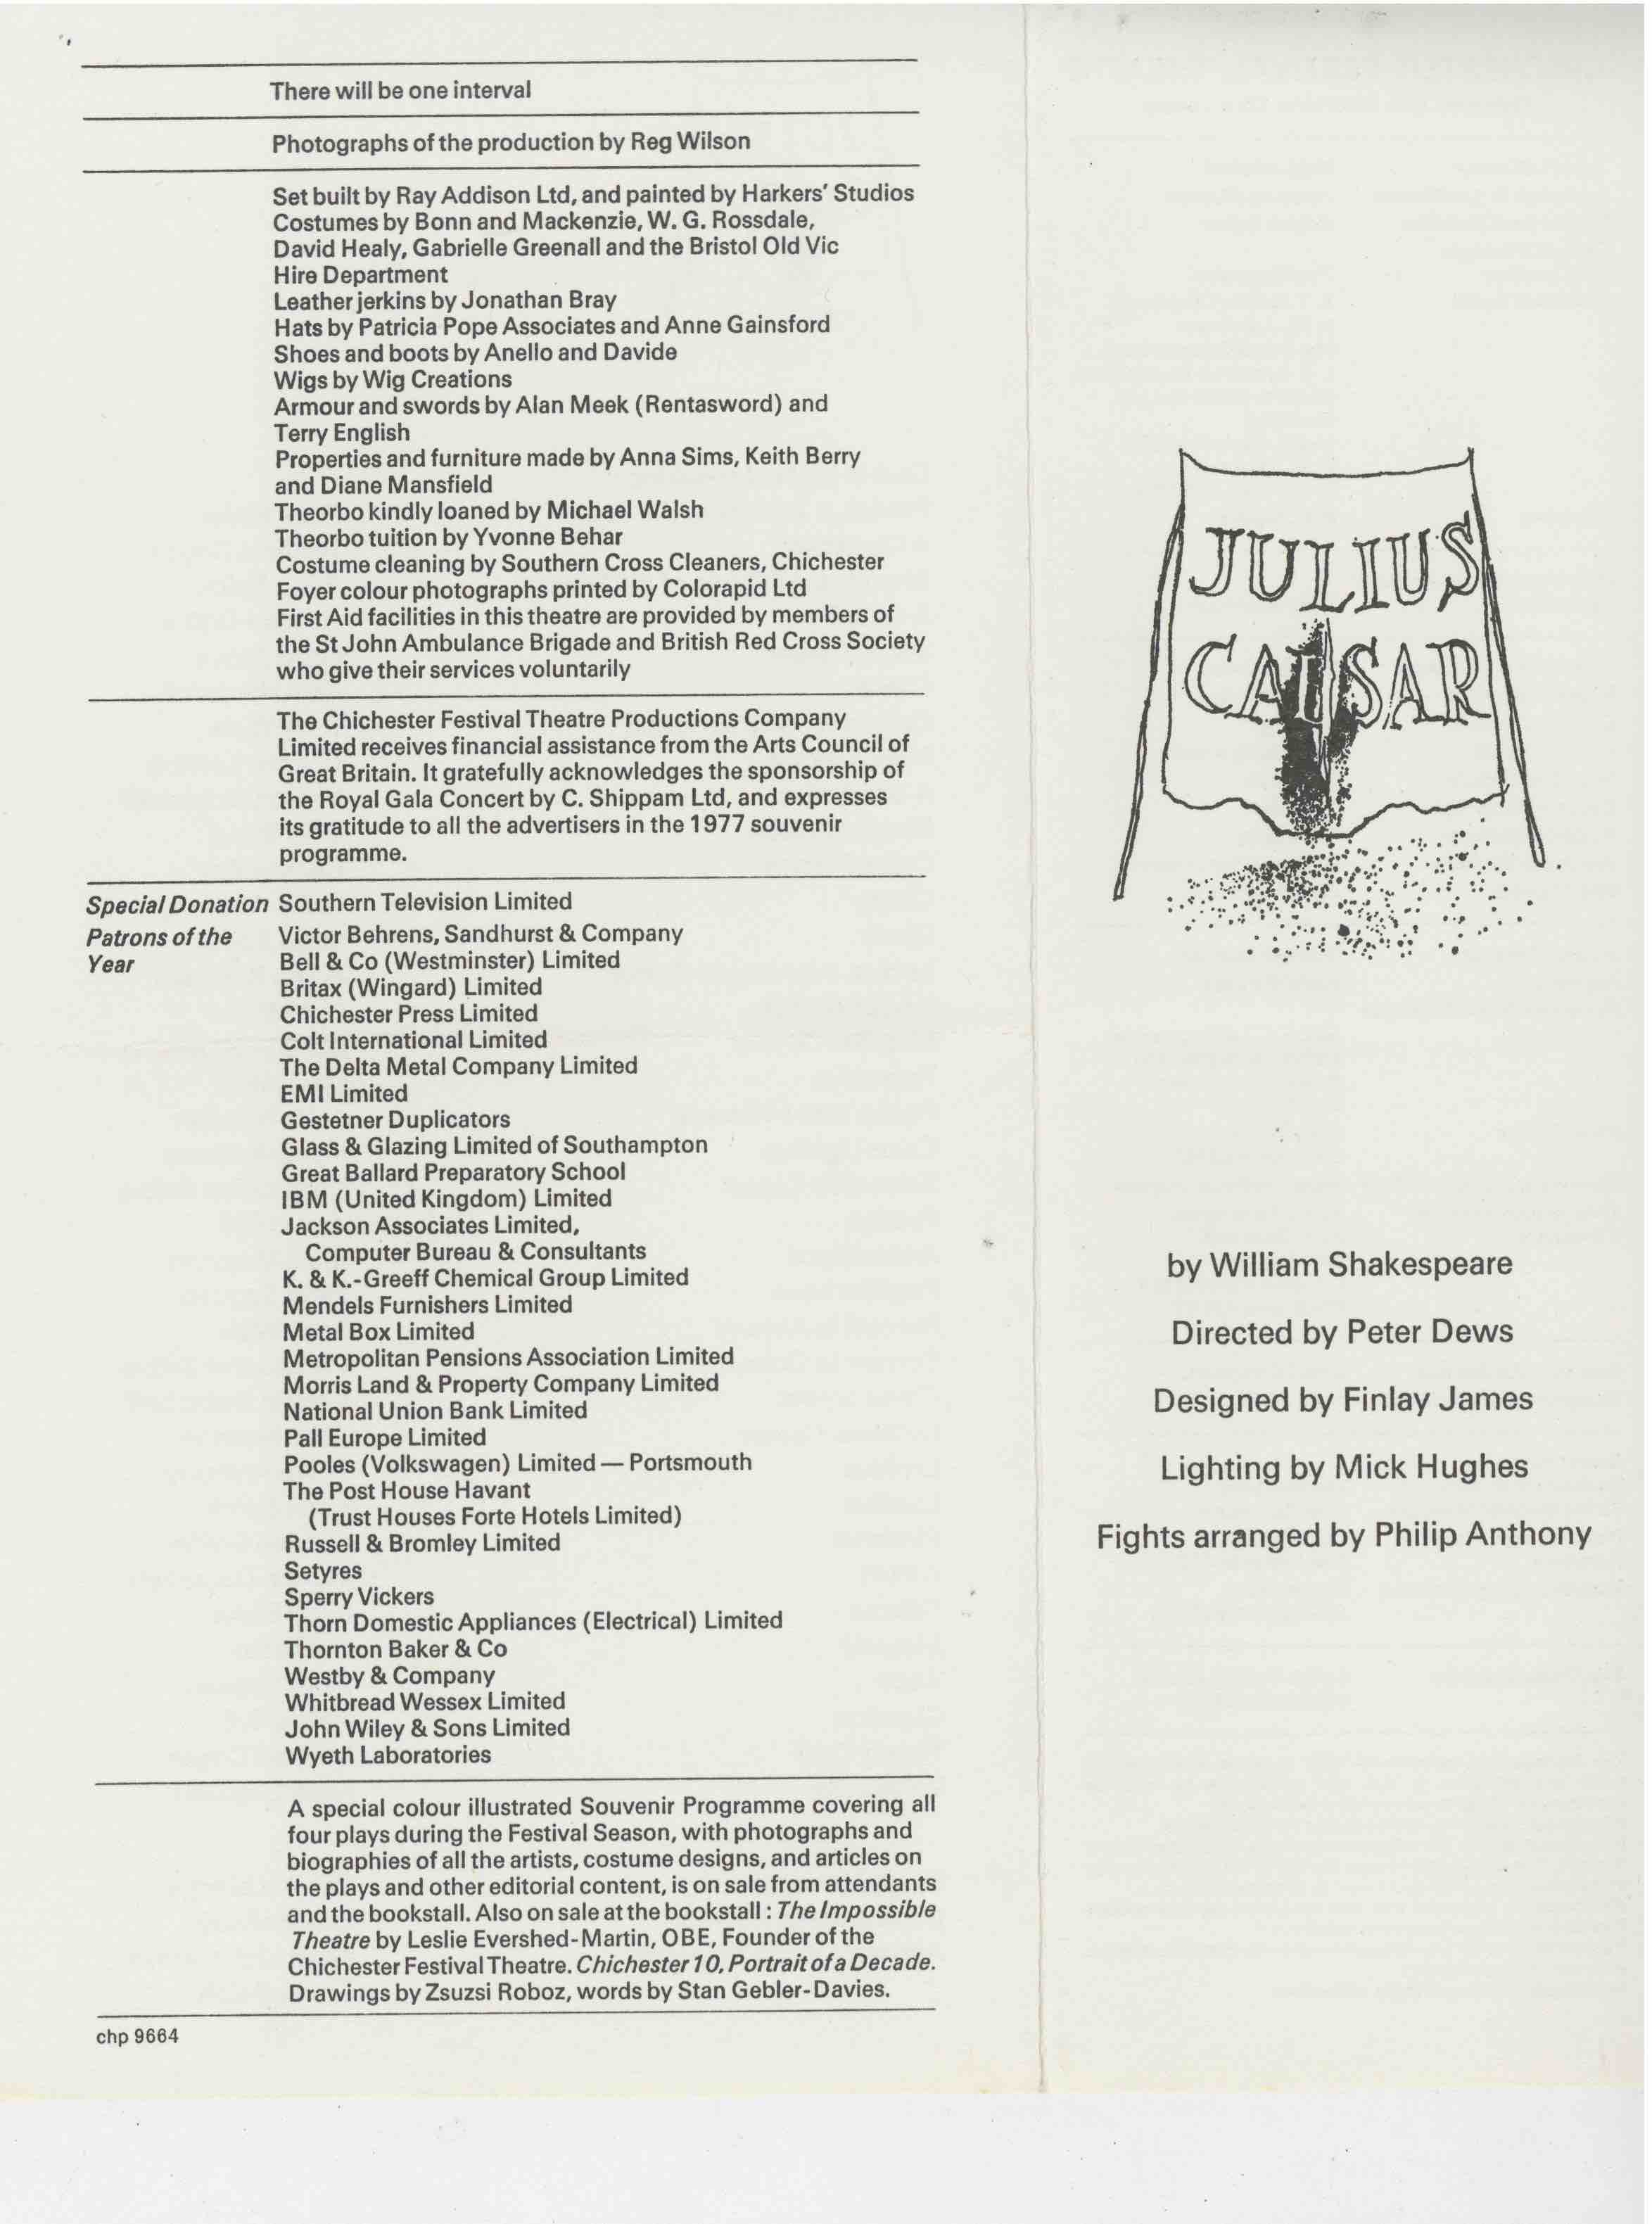 Cast List - Julius Caesar  - 1977- 1 of 2